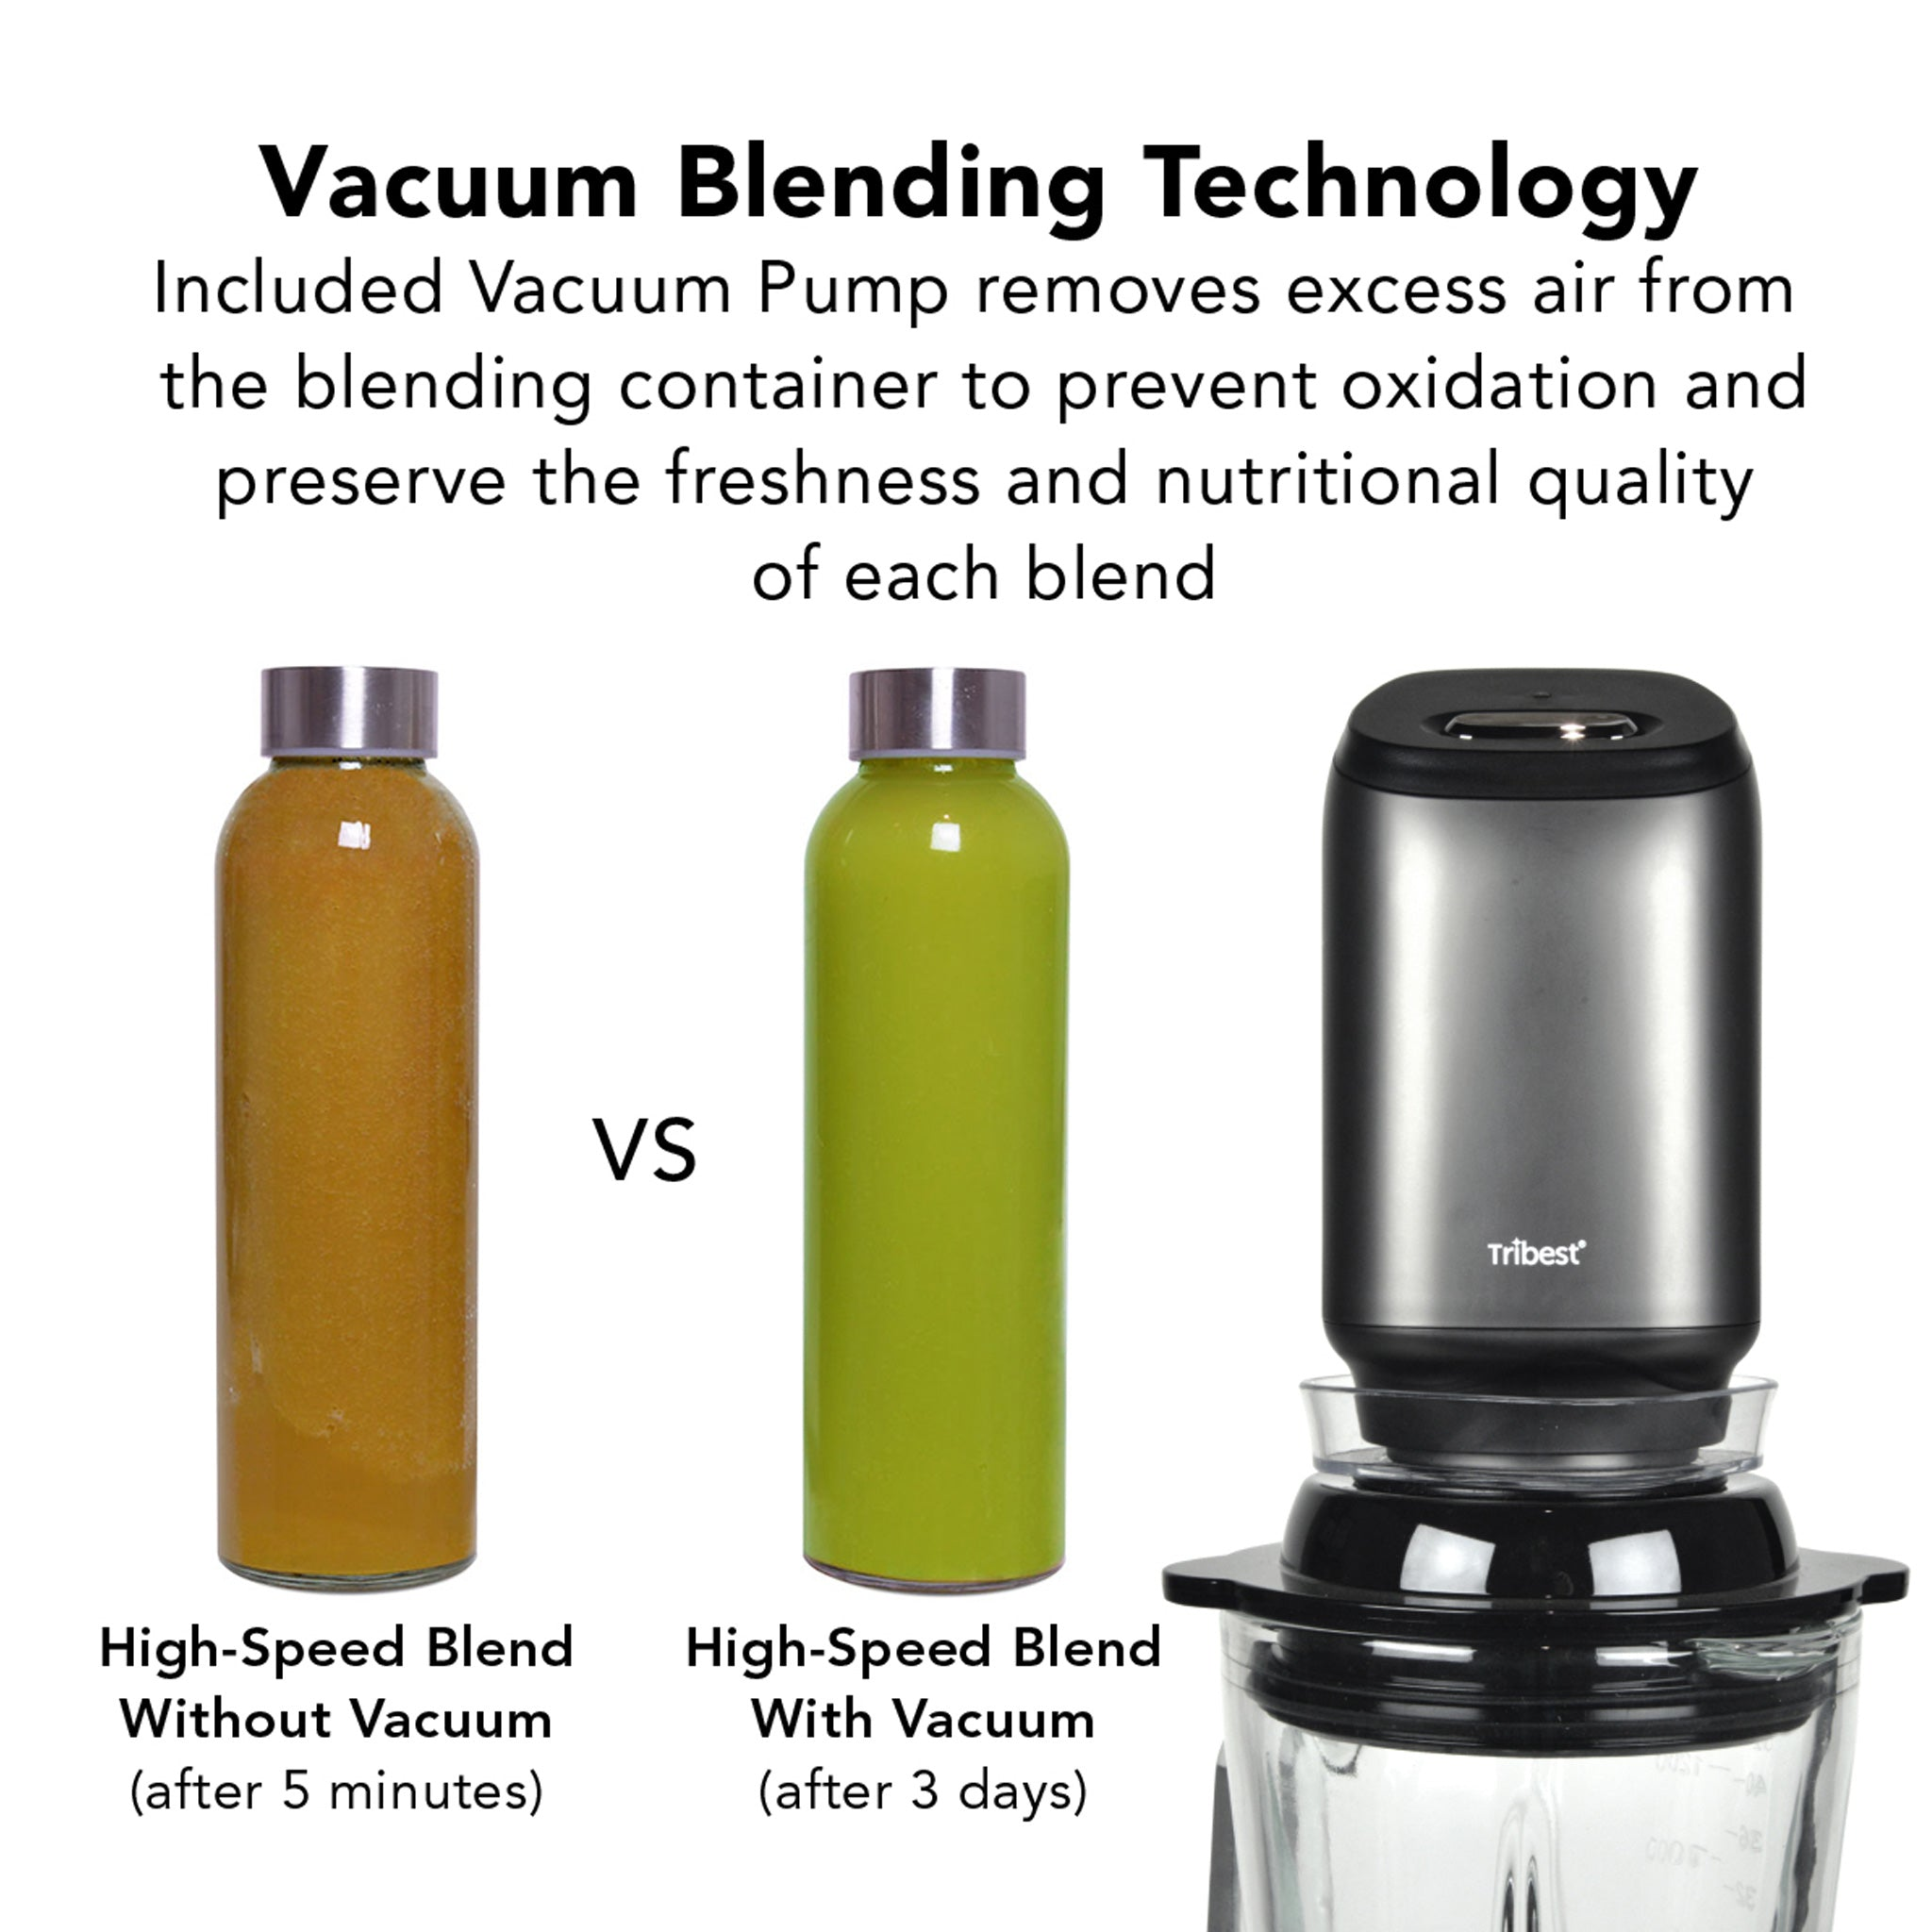 Glass Personal Blender Single-Serving Vacuum Blender PBG-5001-A - Green Apples Comparison - Tribest